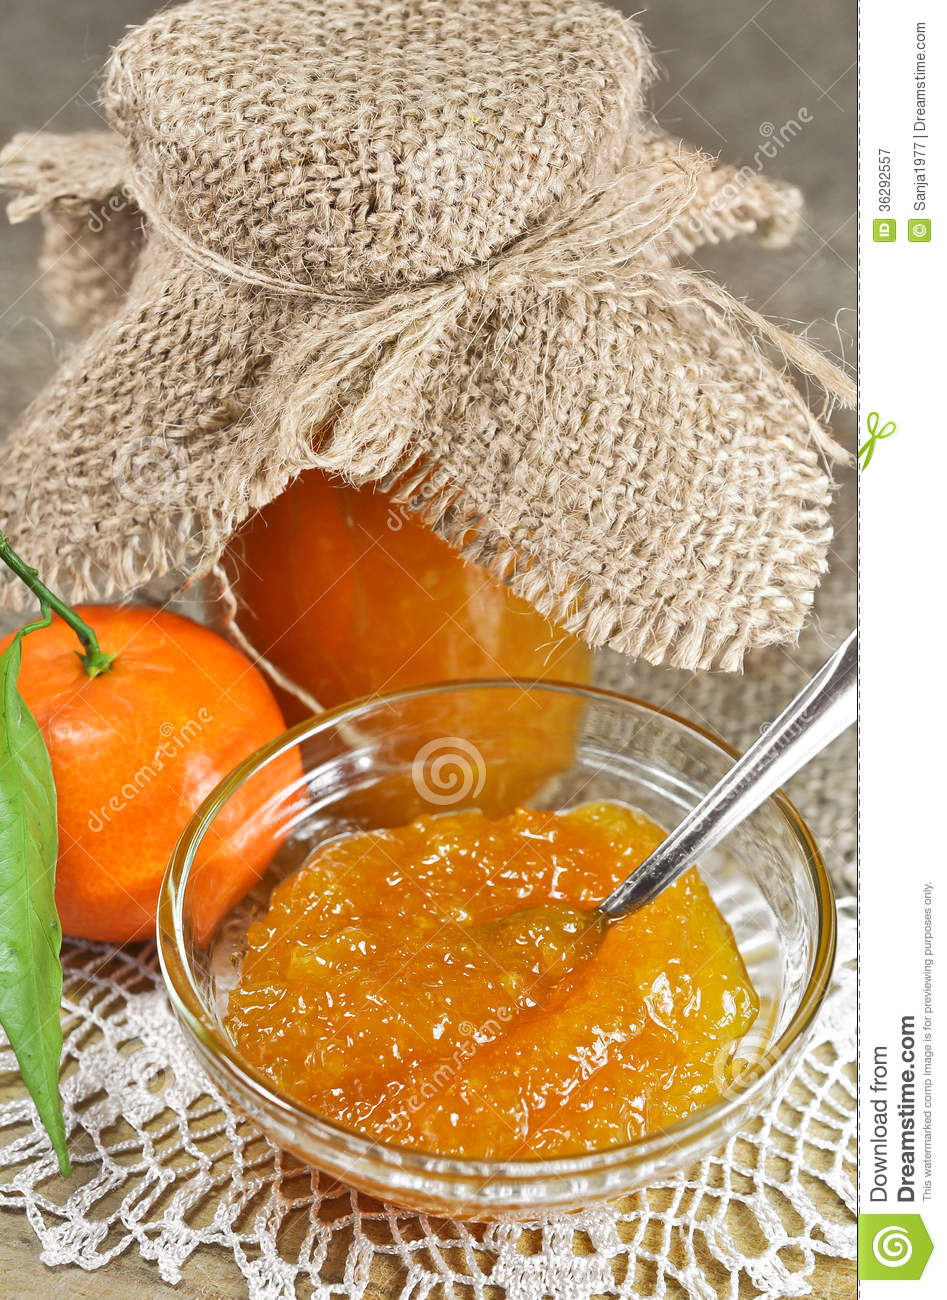 Homemade tangerine jam or marmalade with a fresh tangerine, on a jute ...